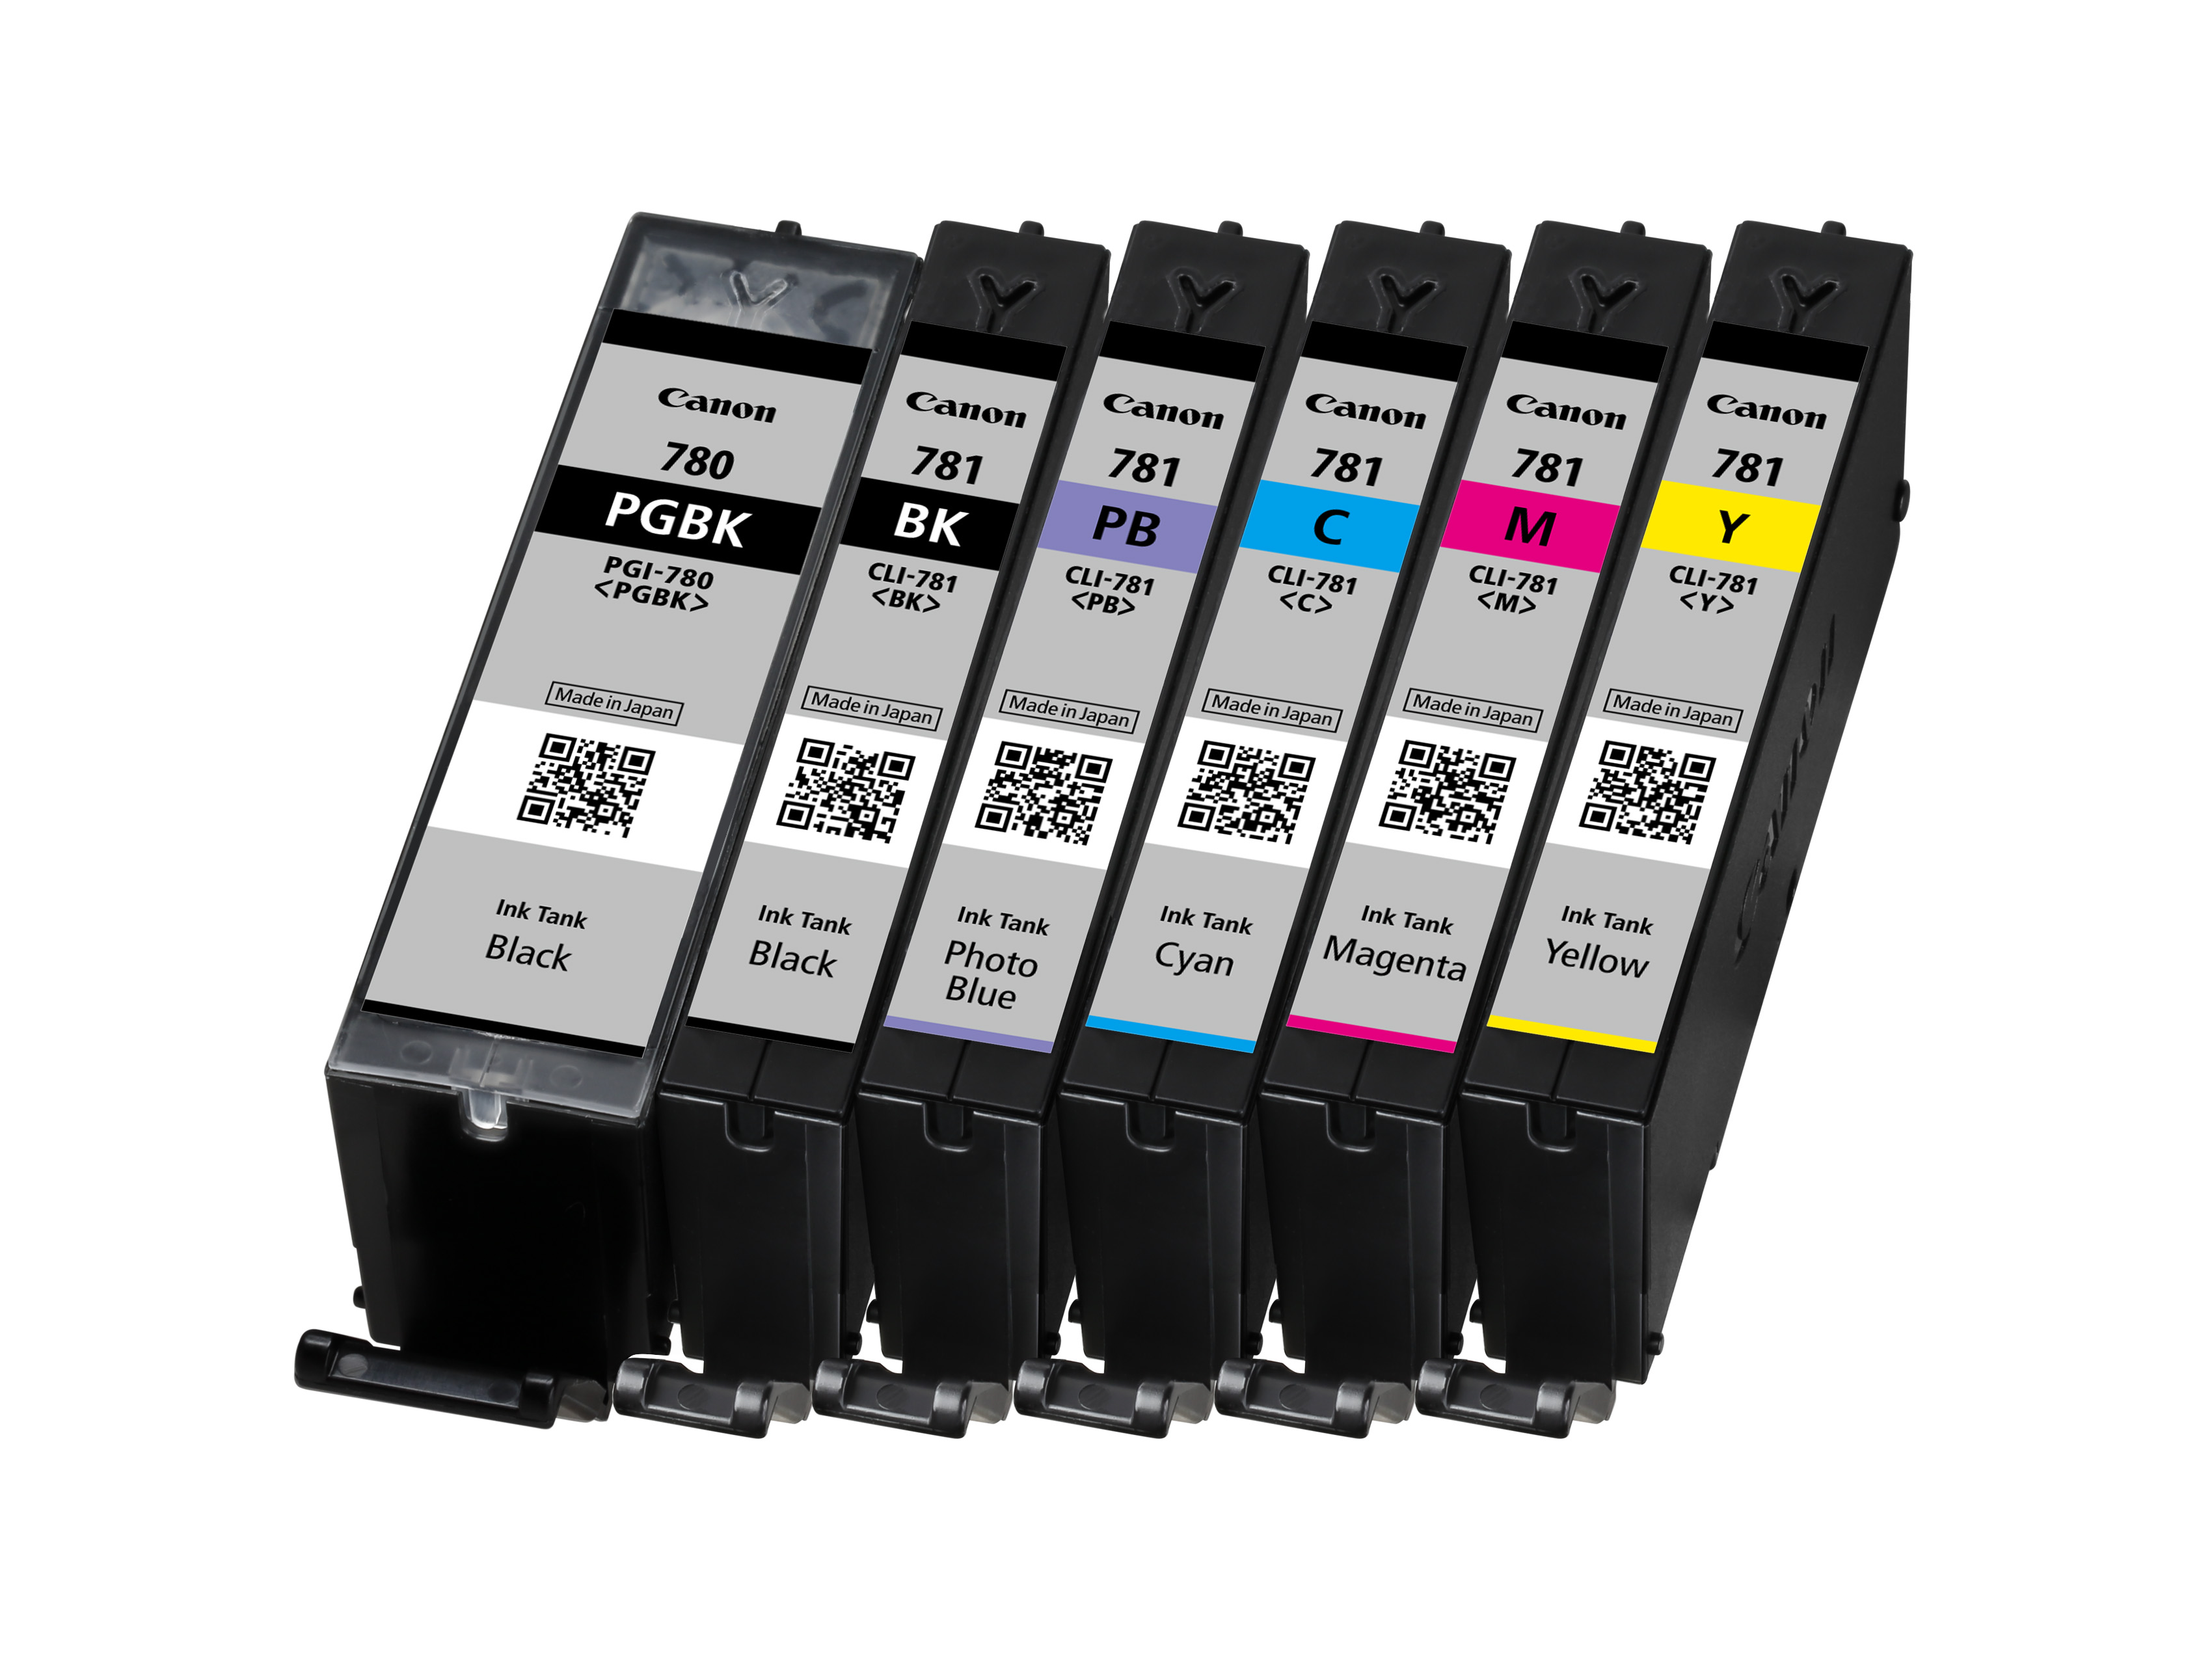 6-Ink System for Vivid Colour Photos